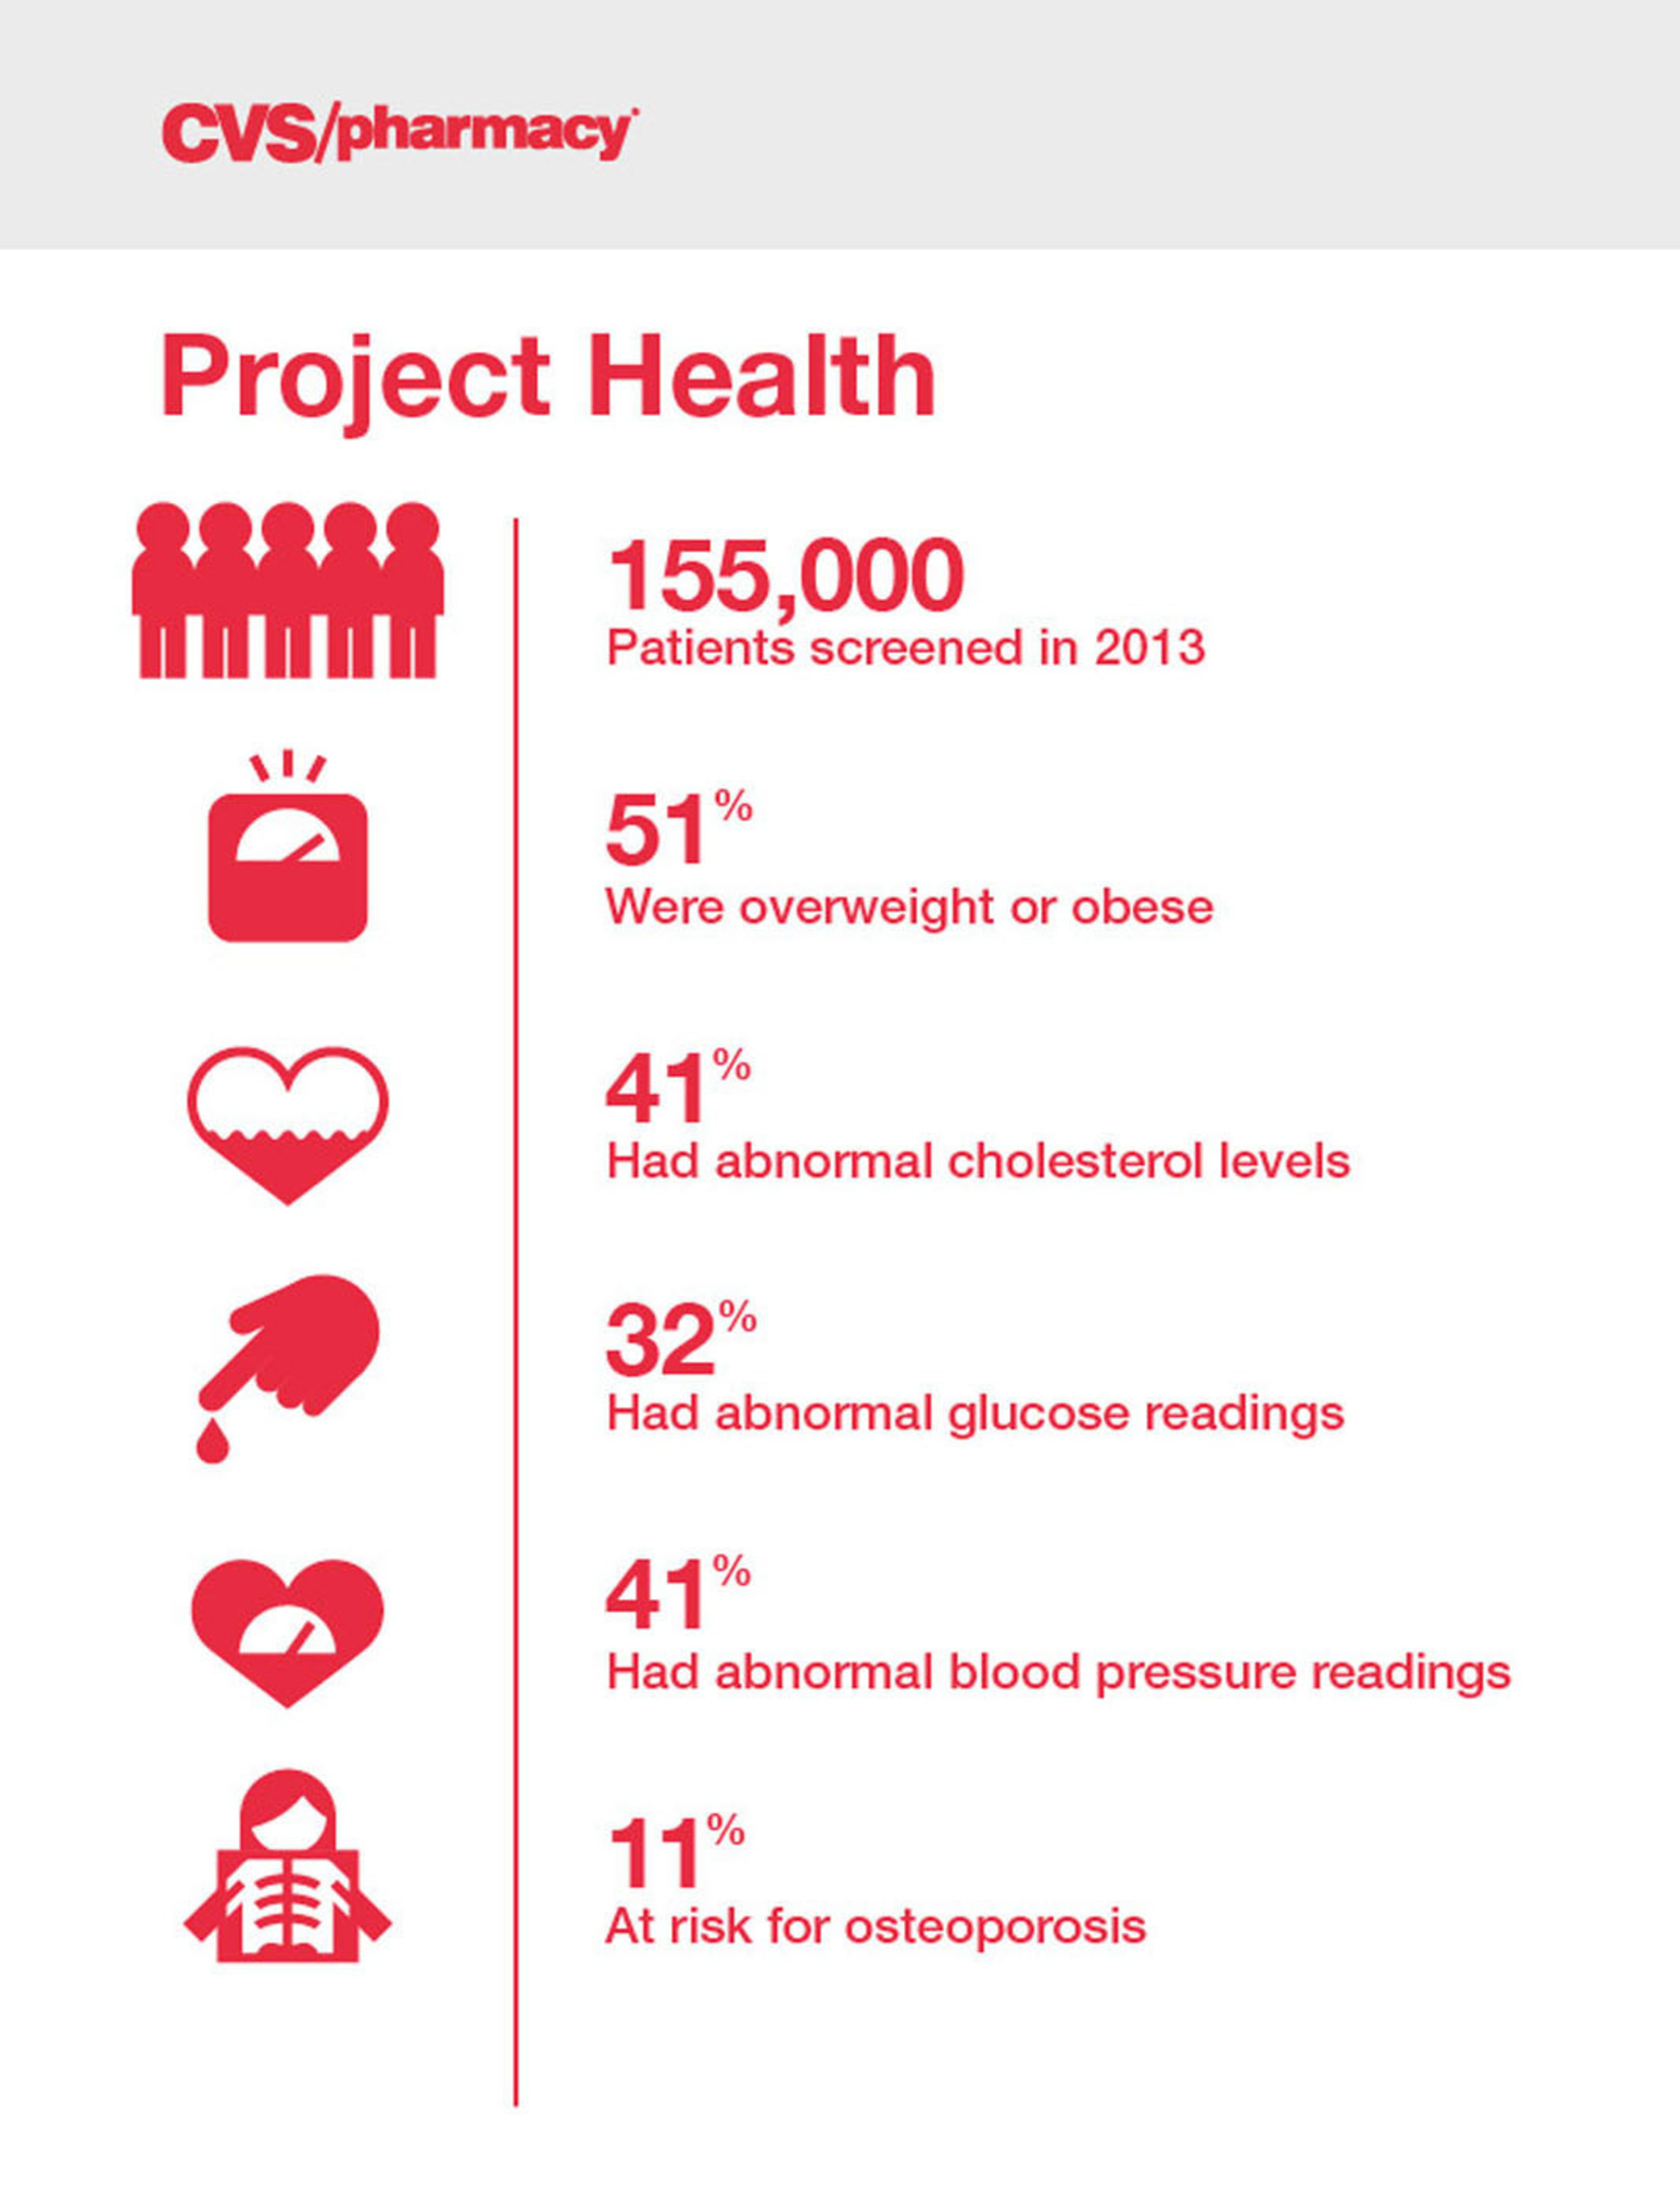 CVS/pharmacy Kicks Off 2014 Project Health Campaign